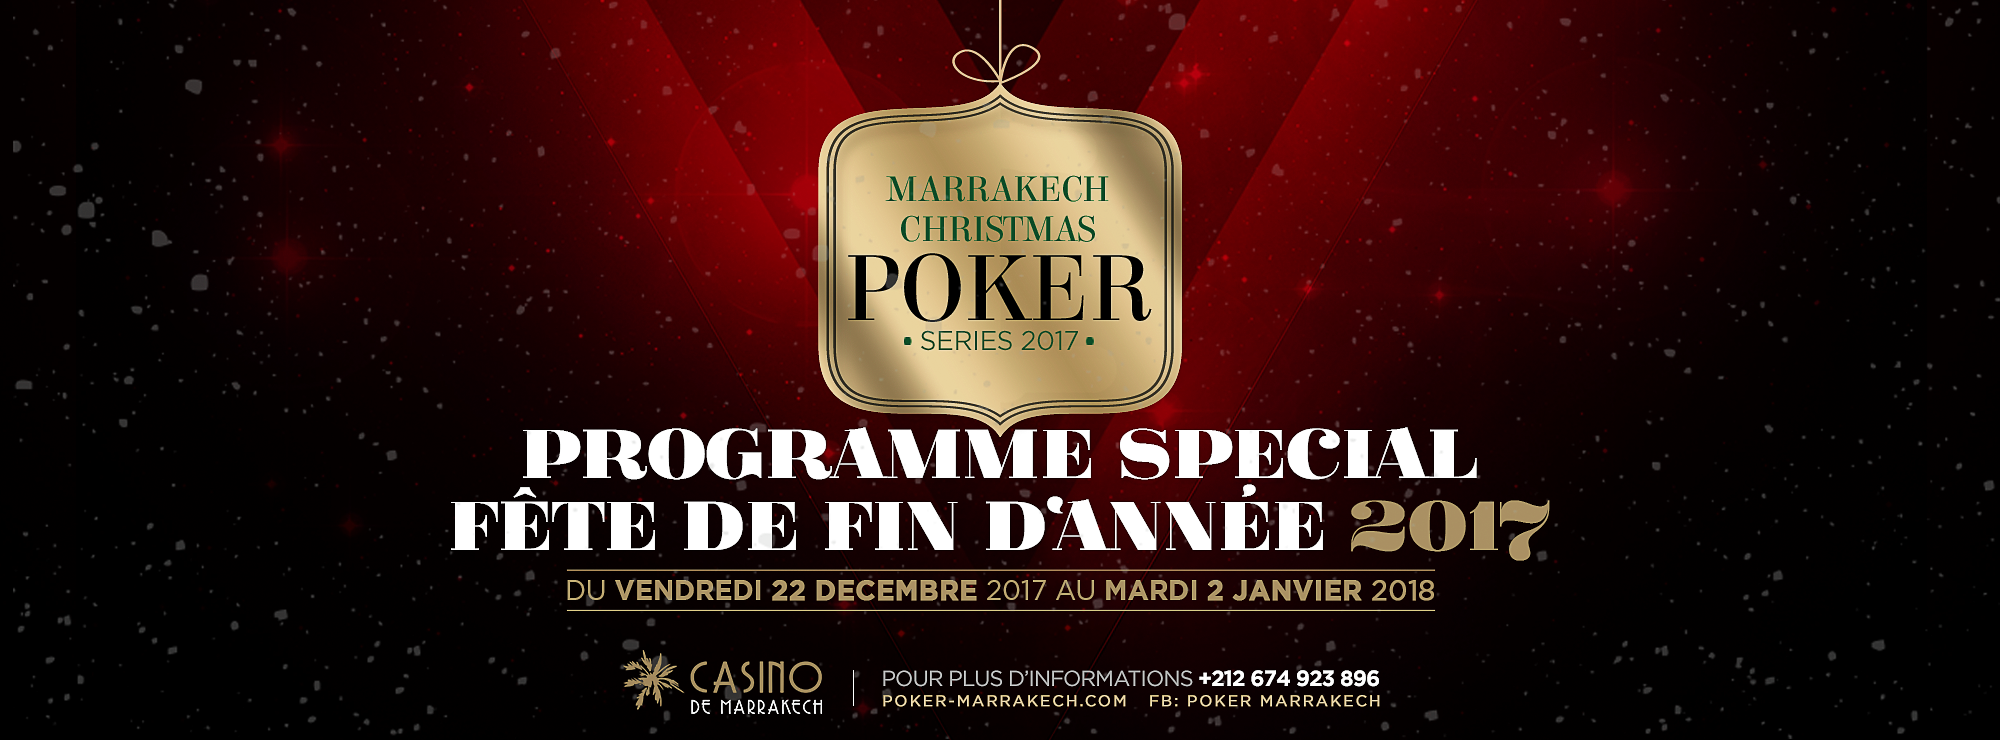 MARRAKECH CHRISTMAS POKER 2017